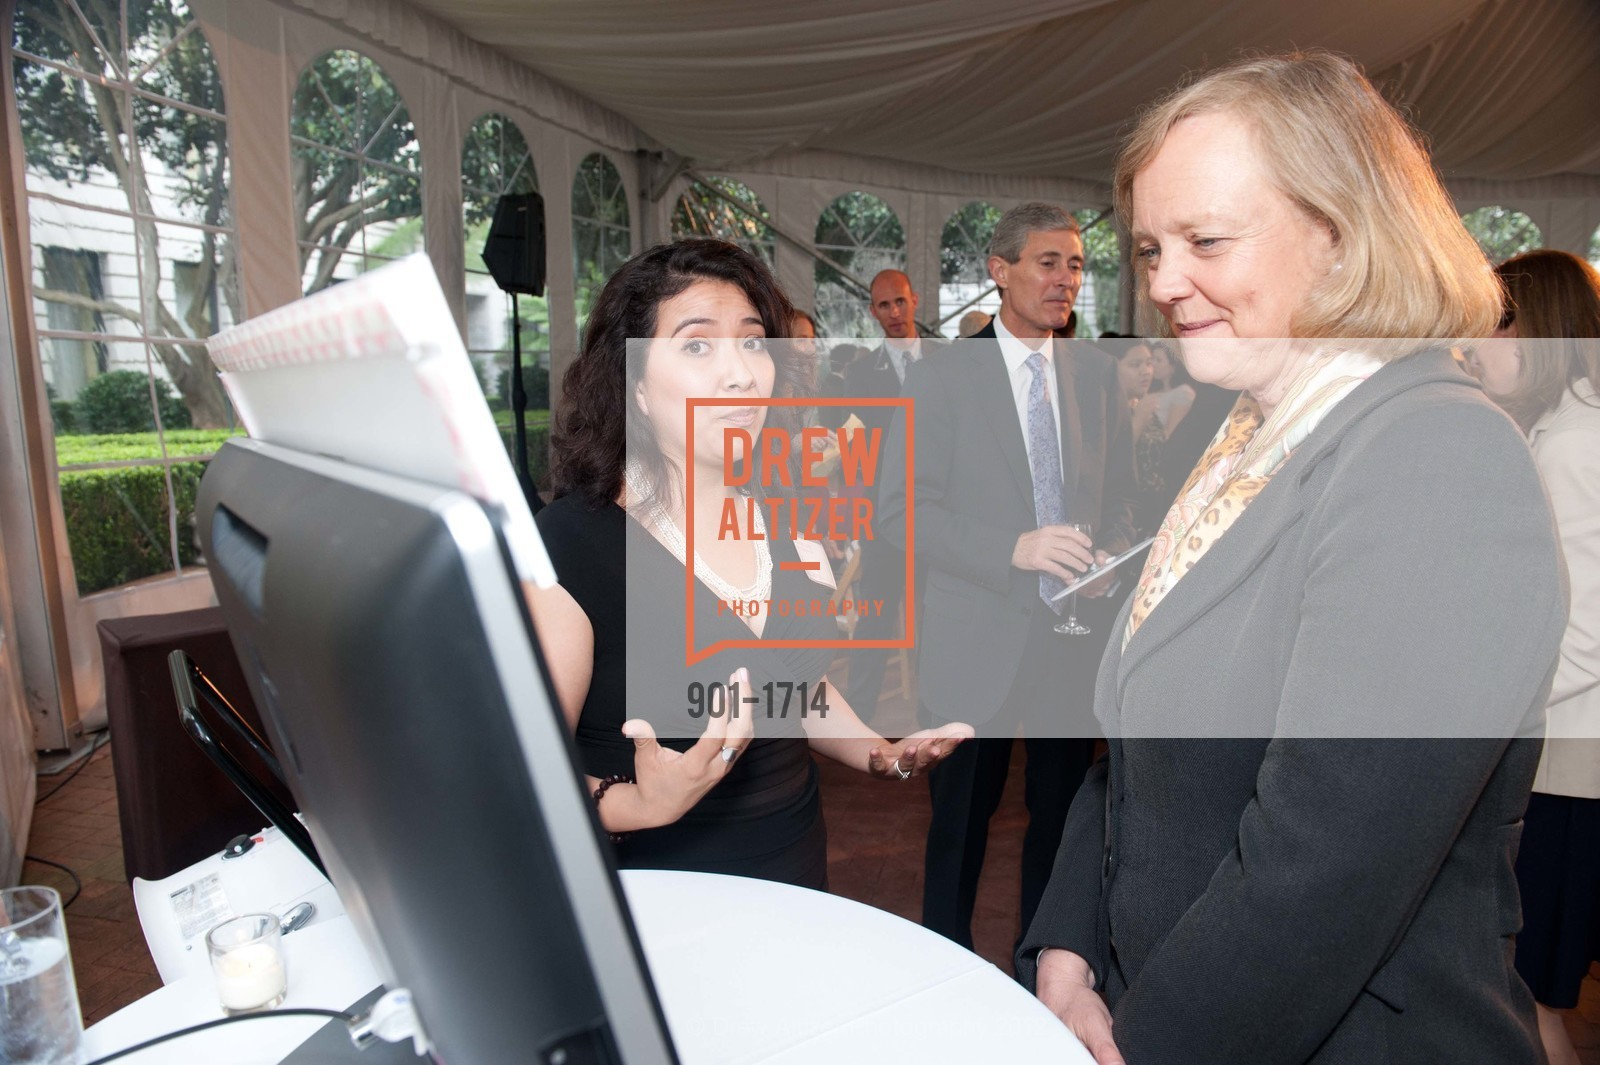 Maribel Lopez, Meg Whitman, Photo #901-1714